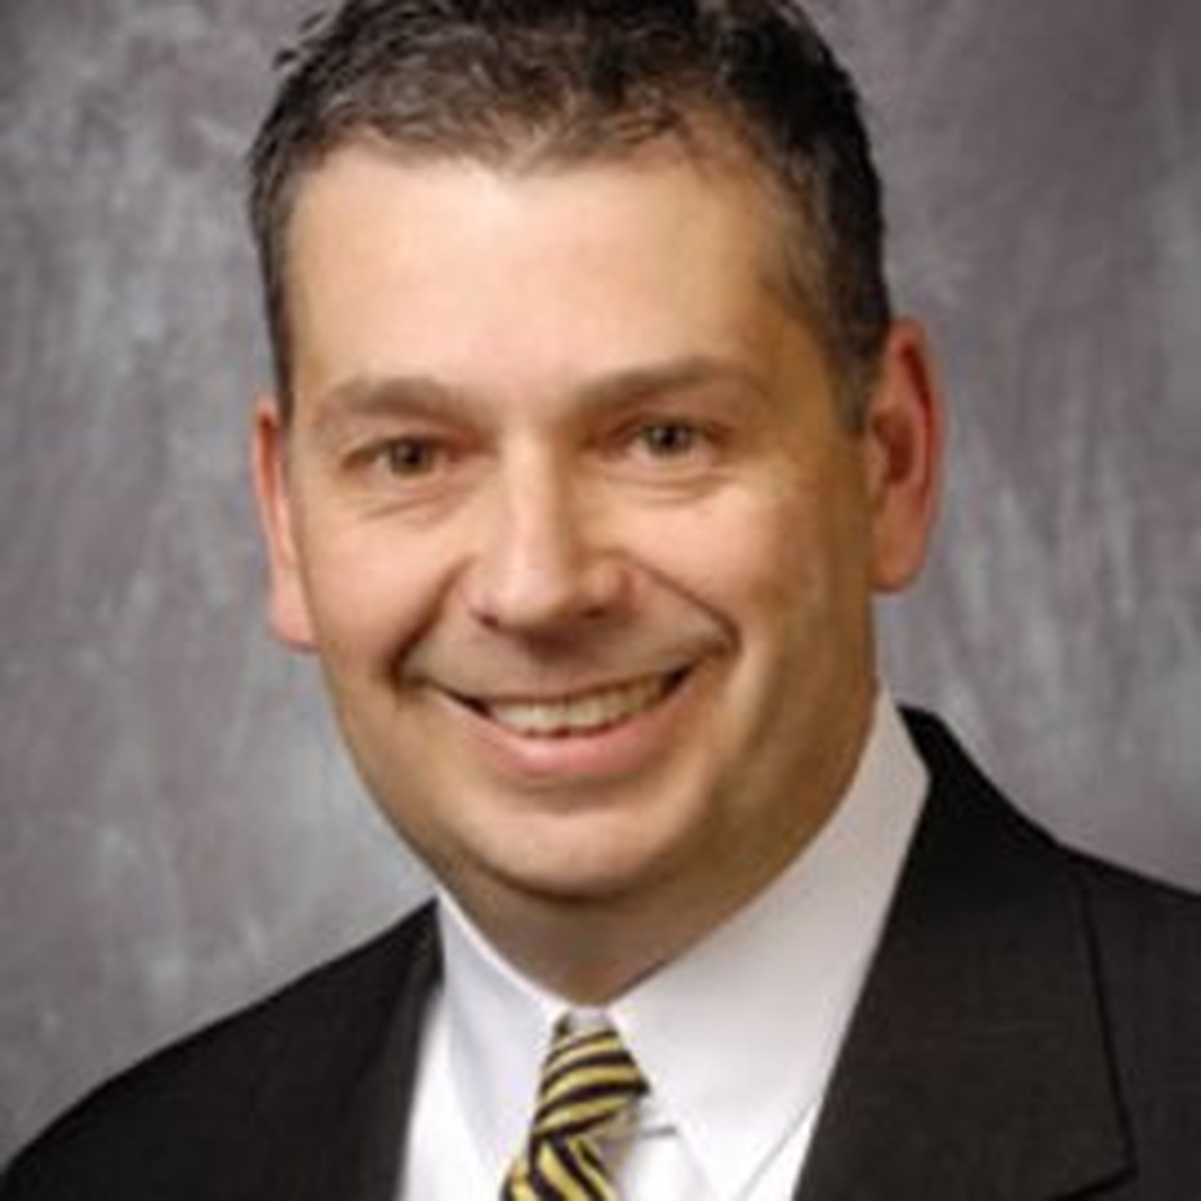 Stephen S. Pappaterra